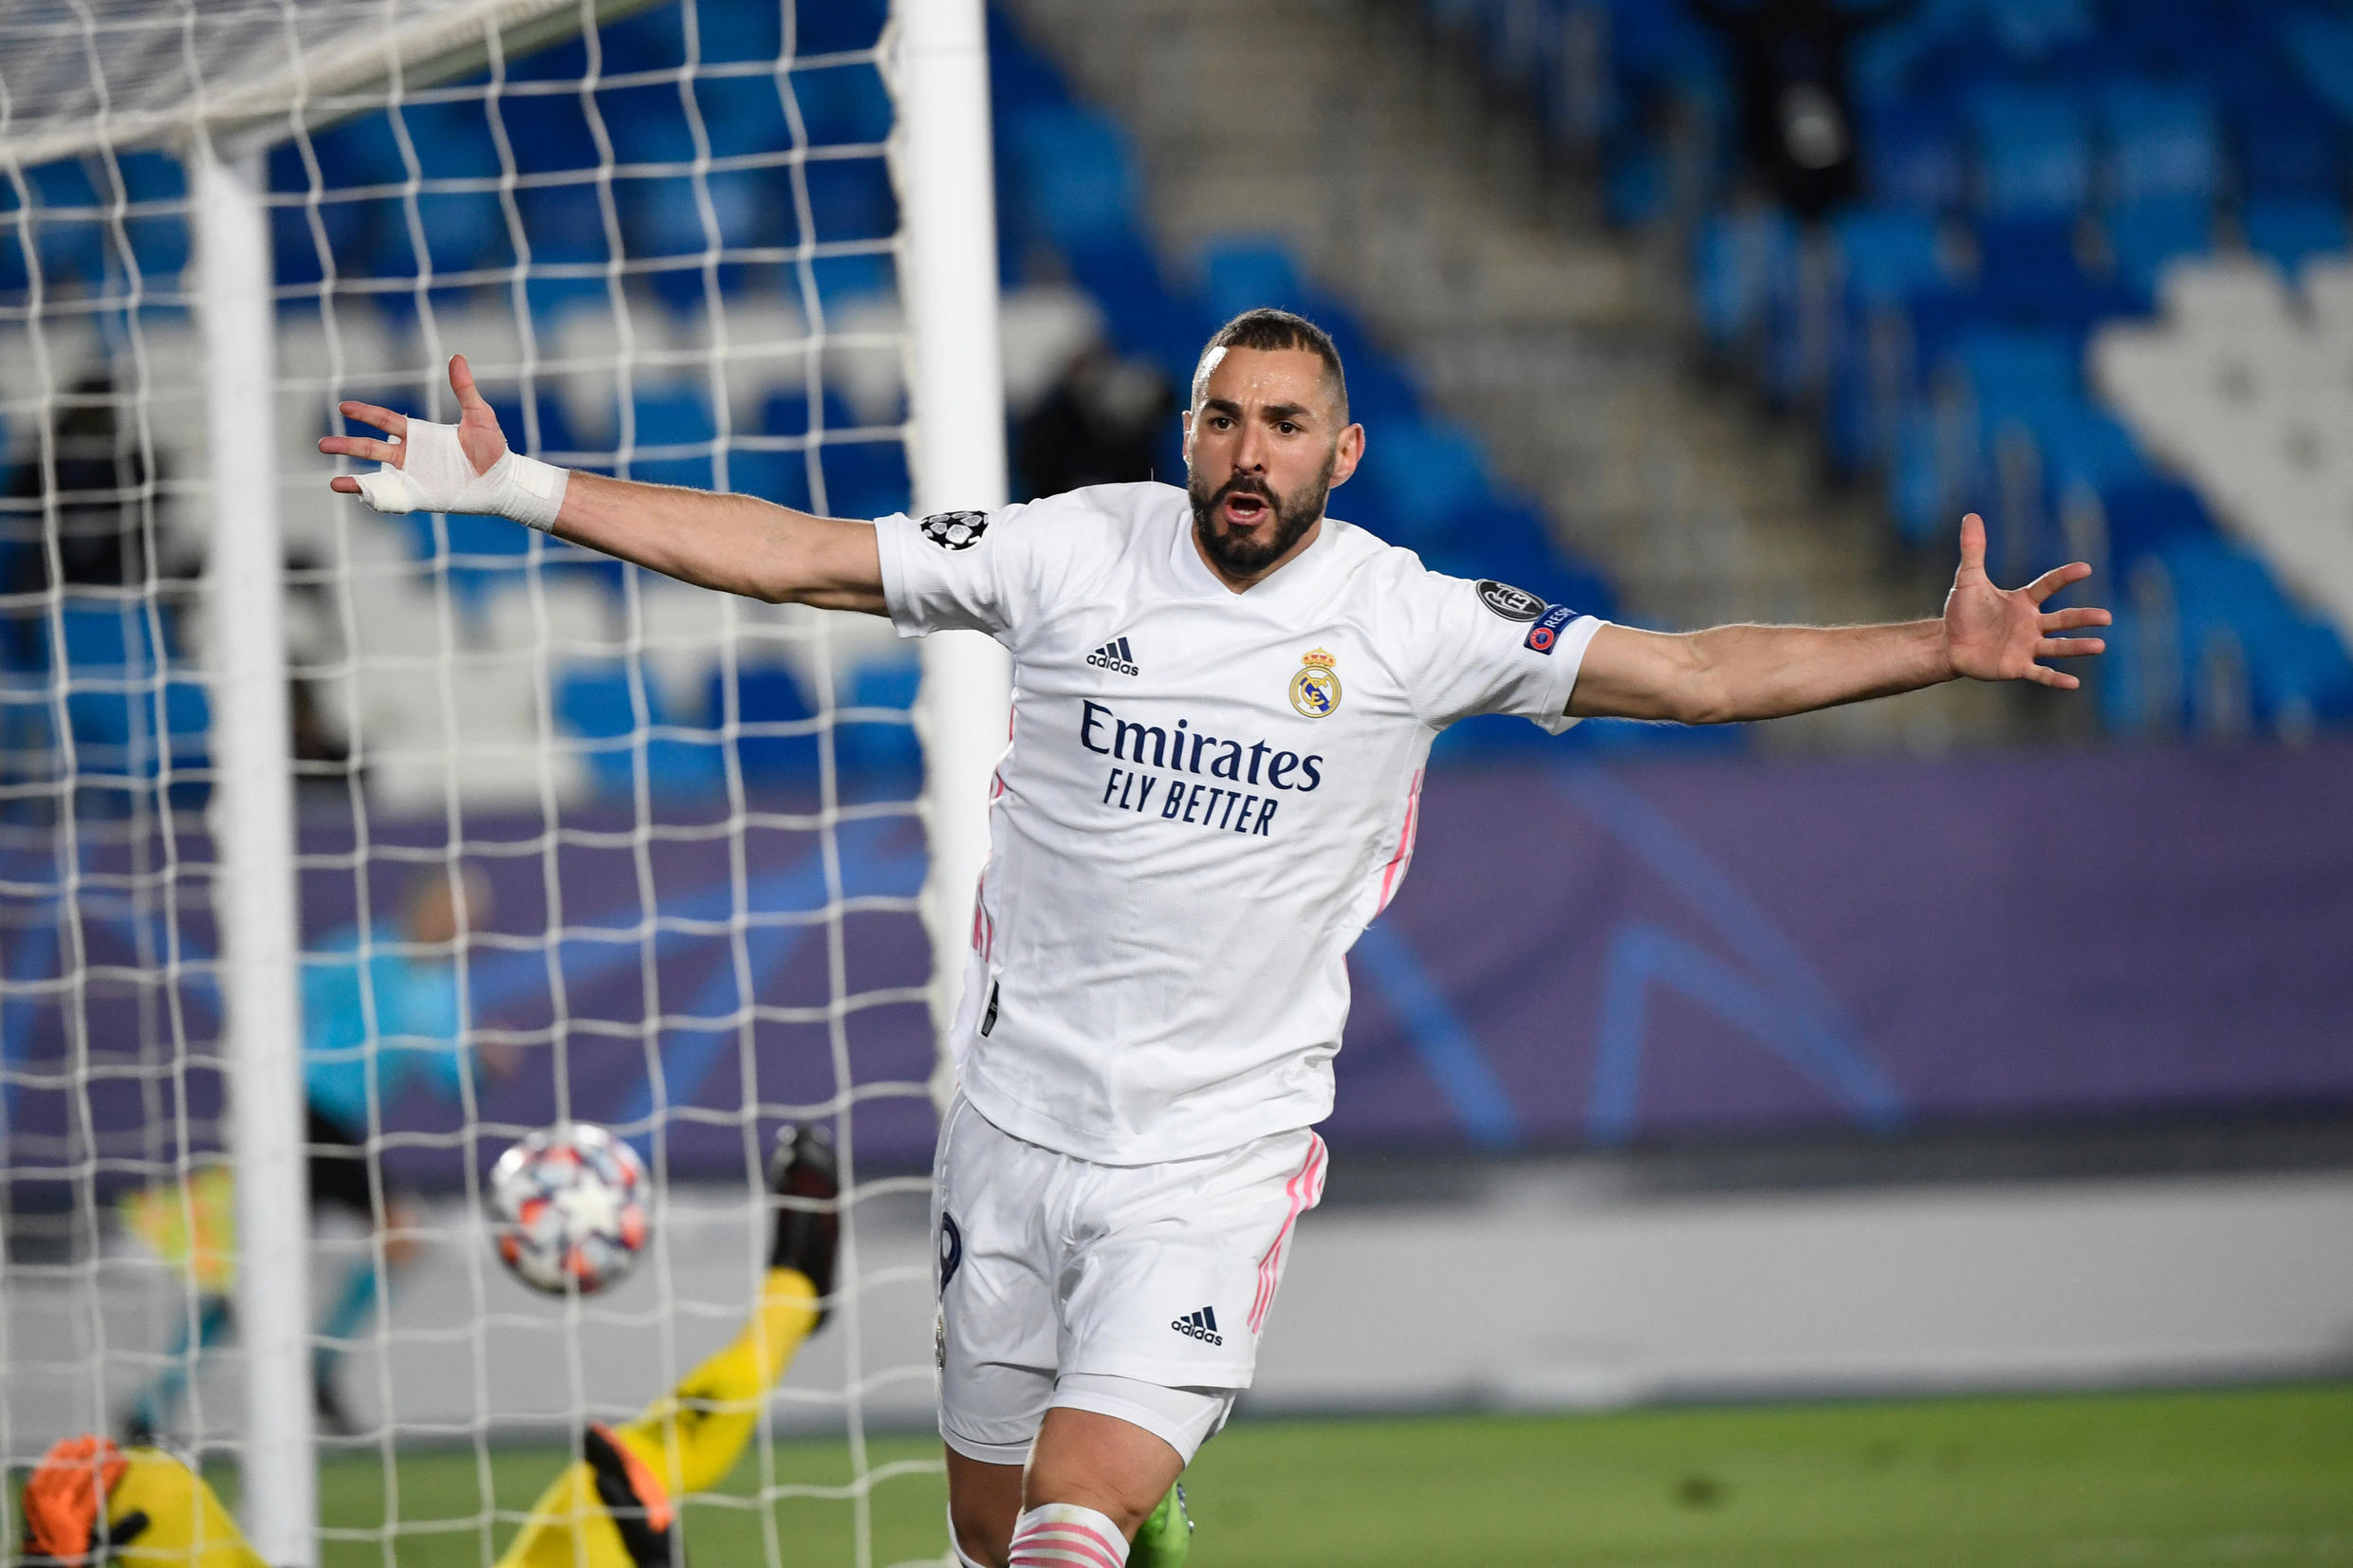 Karim Benzema's brace sent record 13-time winners Real Madrid through to the last 16 of the Champions League